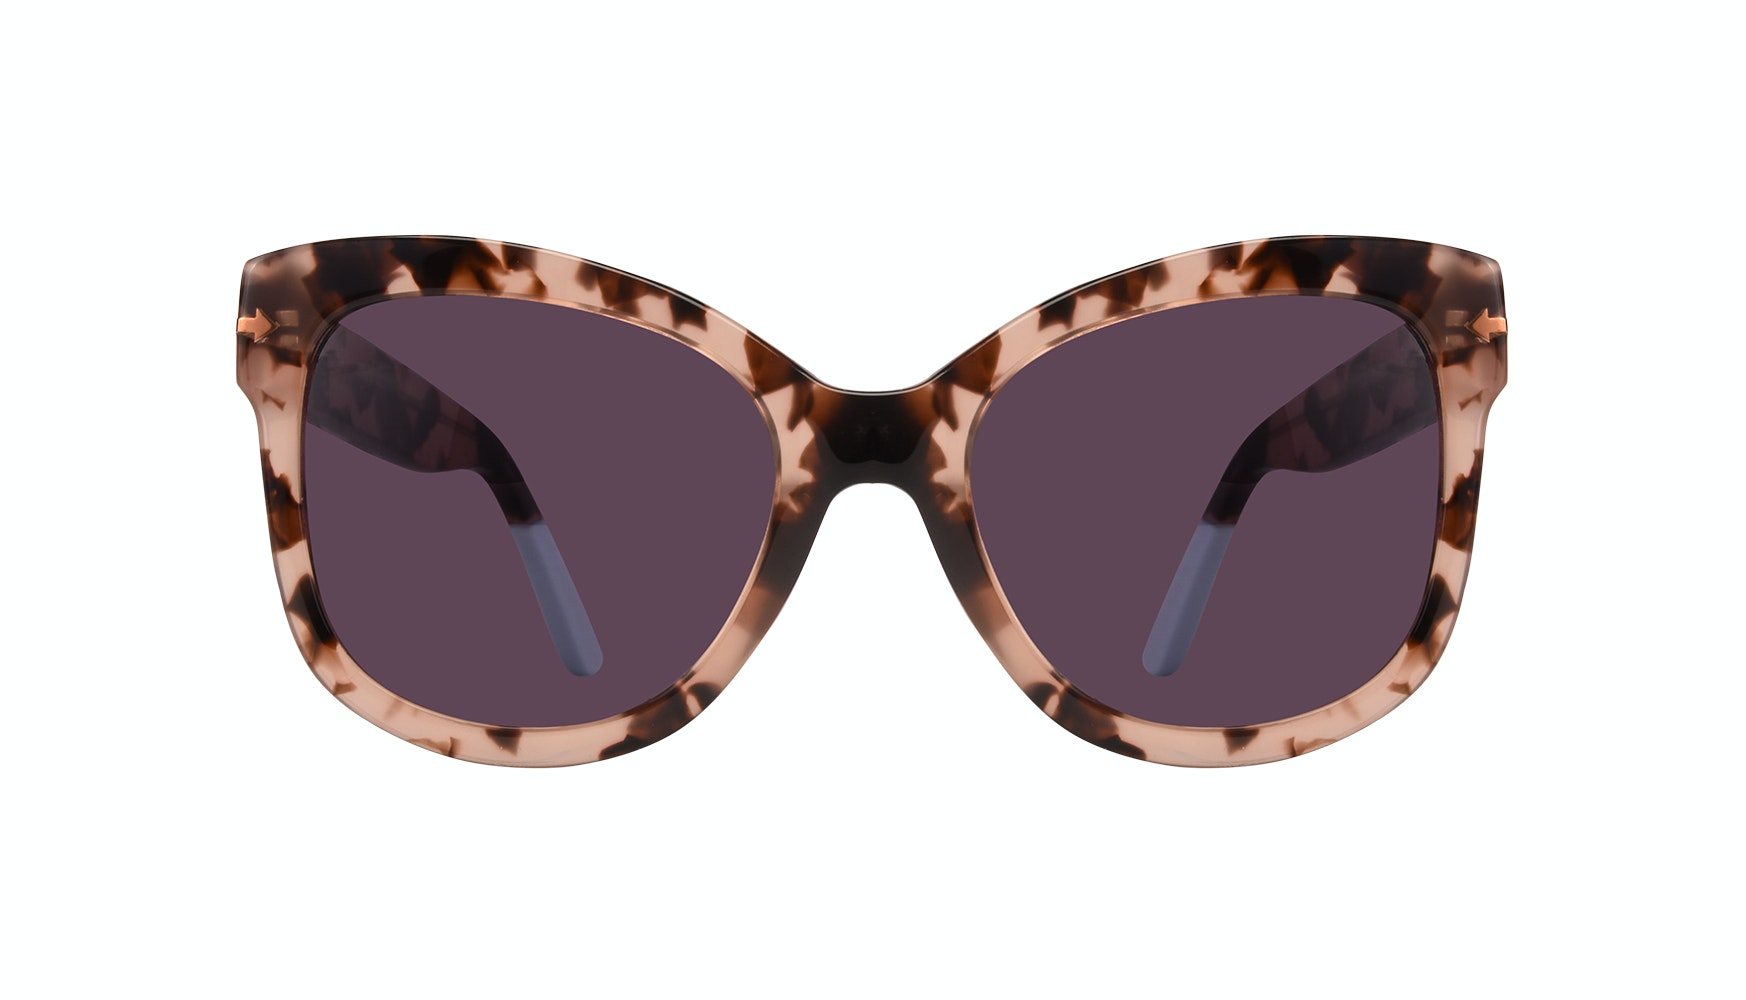 Affordable Fashion Glasses Cat Eye Square Sunglasses Women Marlo Coastal